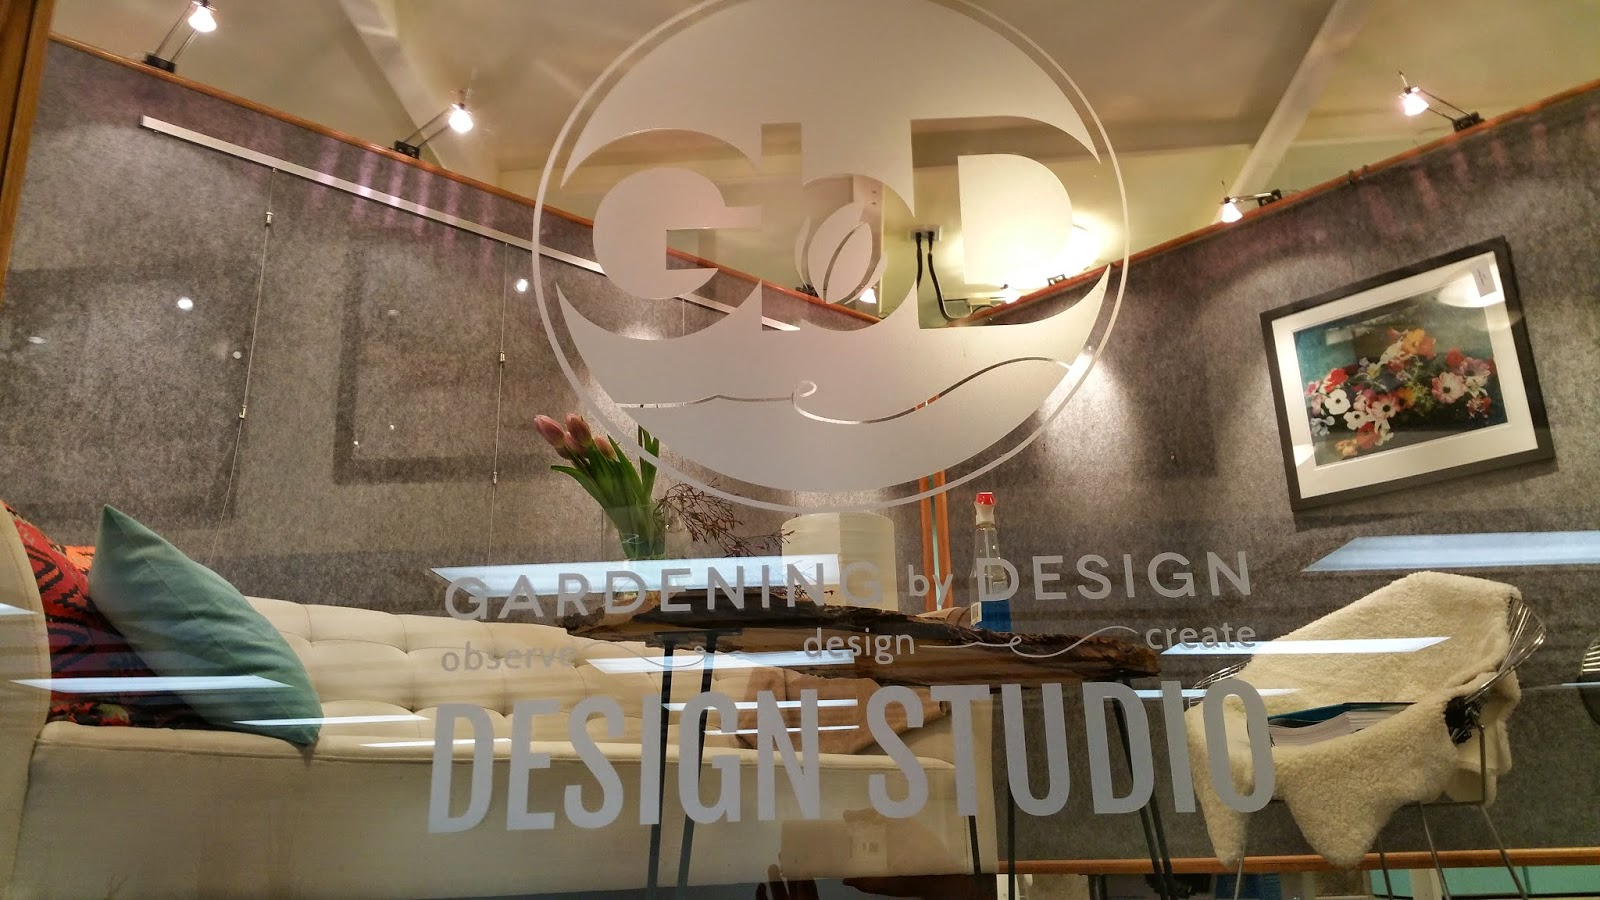 Etched Glass Decal on Mezzanine Glass Railing at Gardening by Design